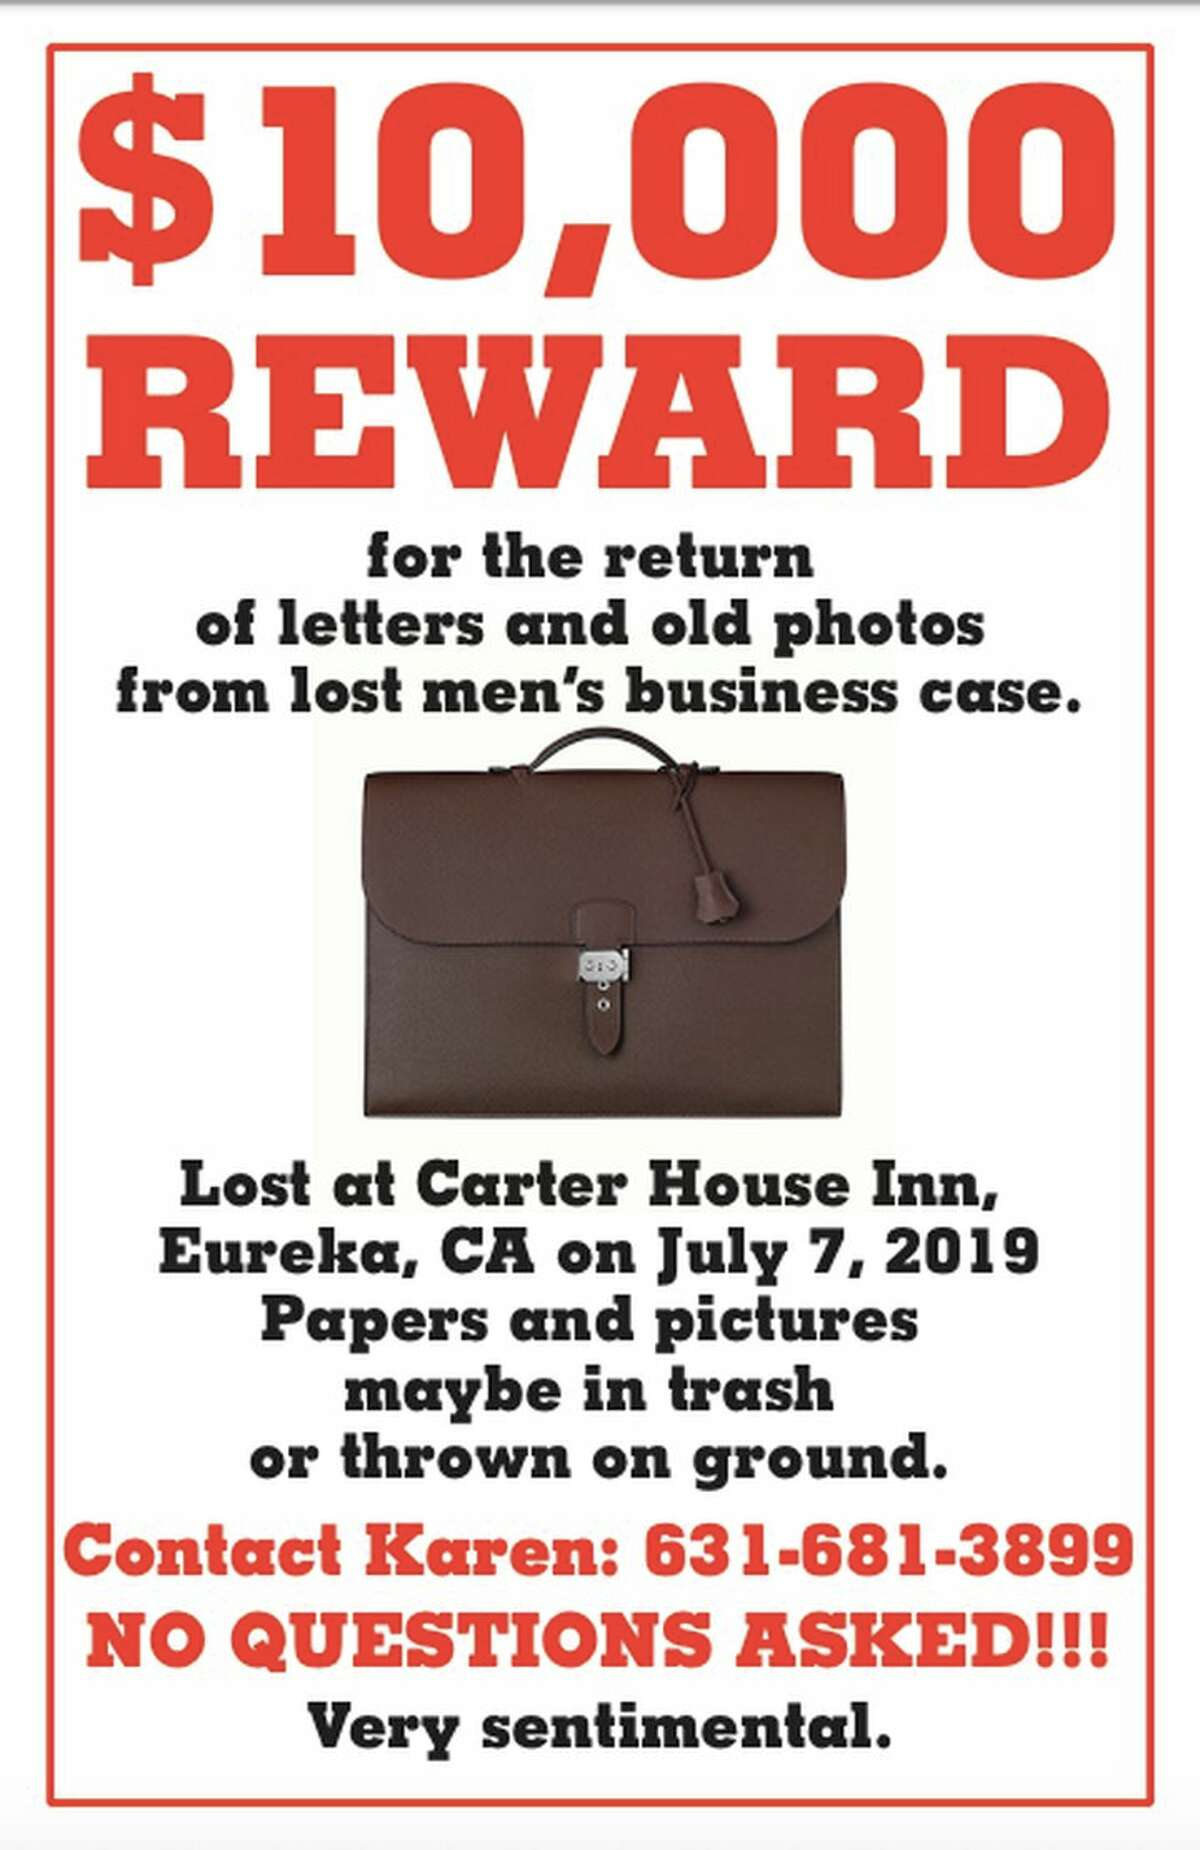 Michel David-Weill is seeking the return of his briefcase, which contains family photos and letters. It was taken from the Carter House Inn in Eureka on July 7, 2019.